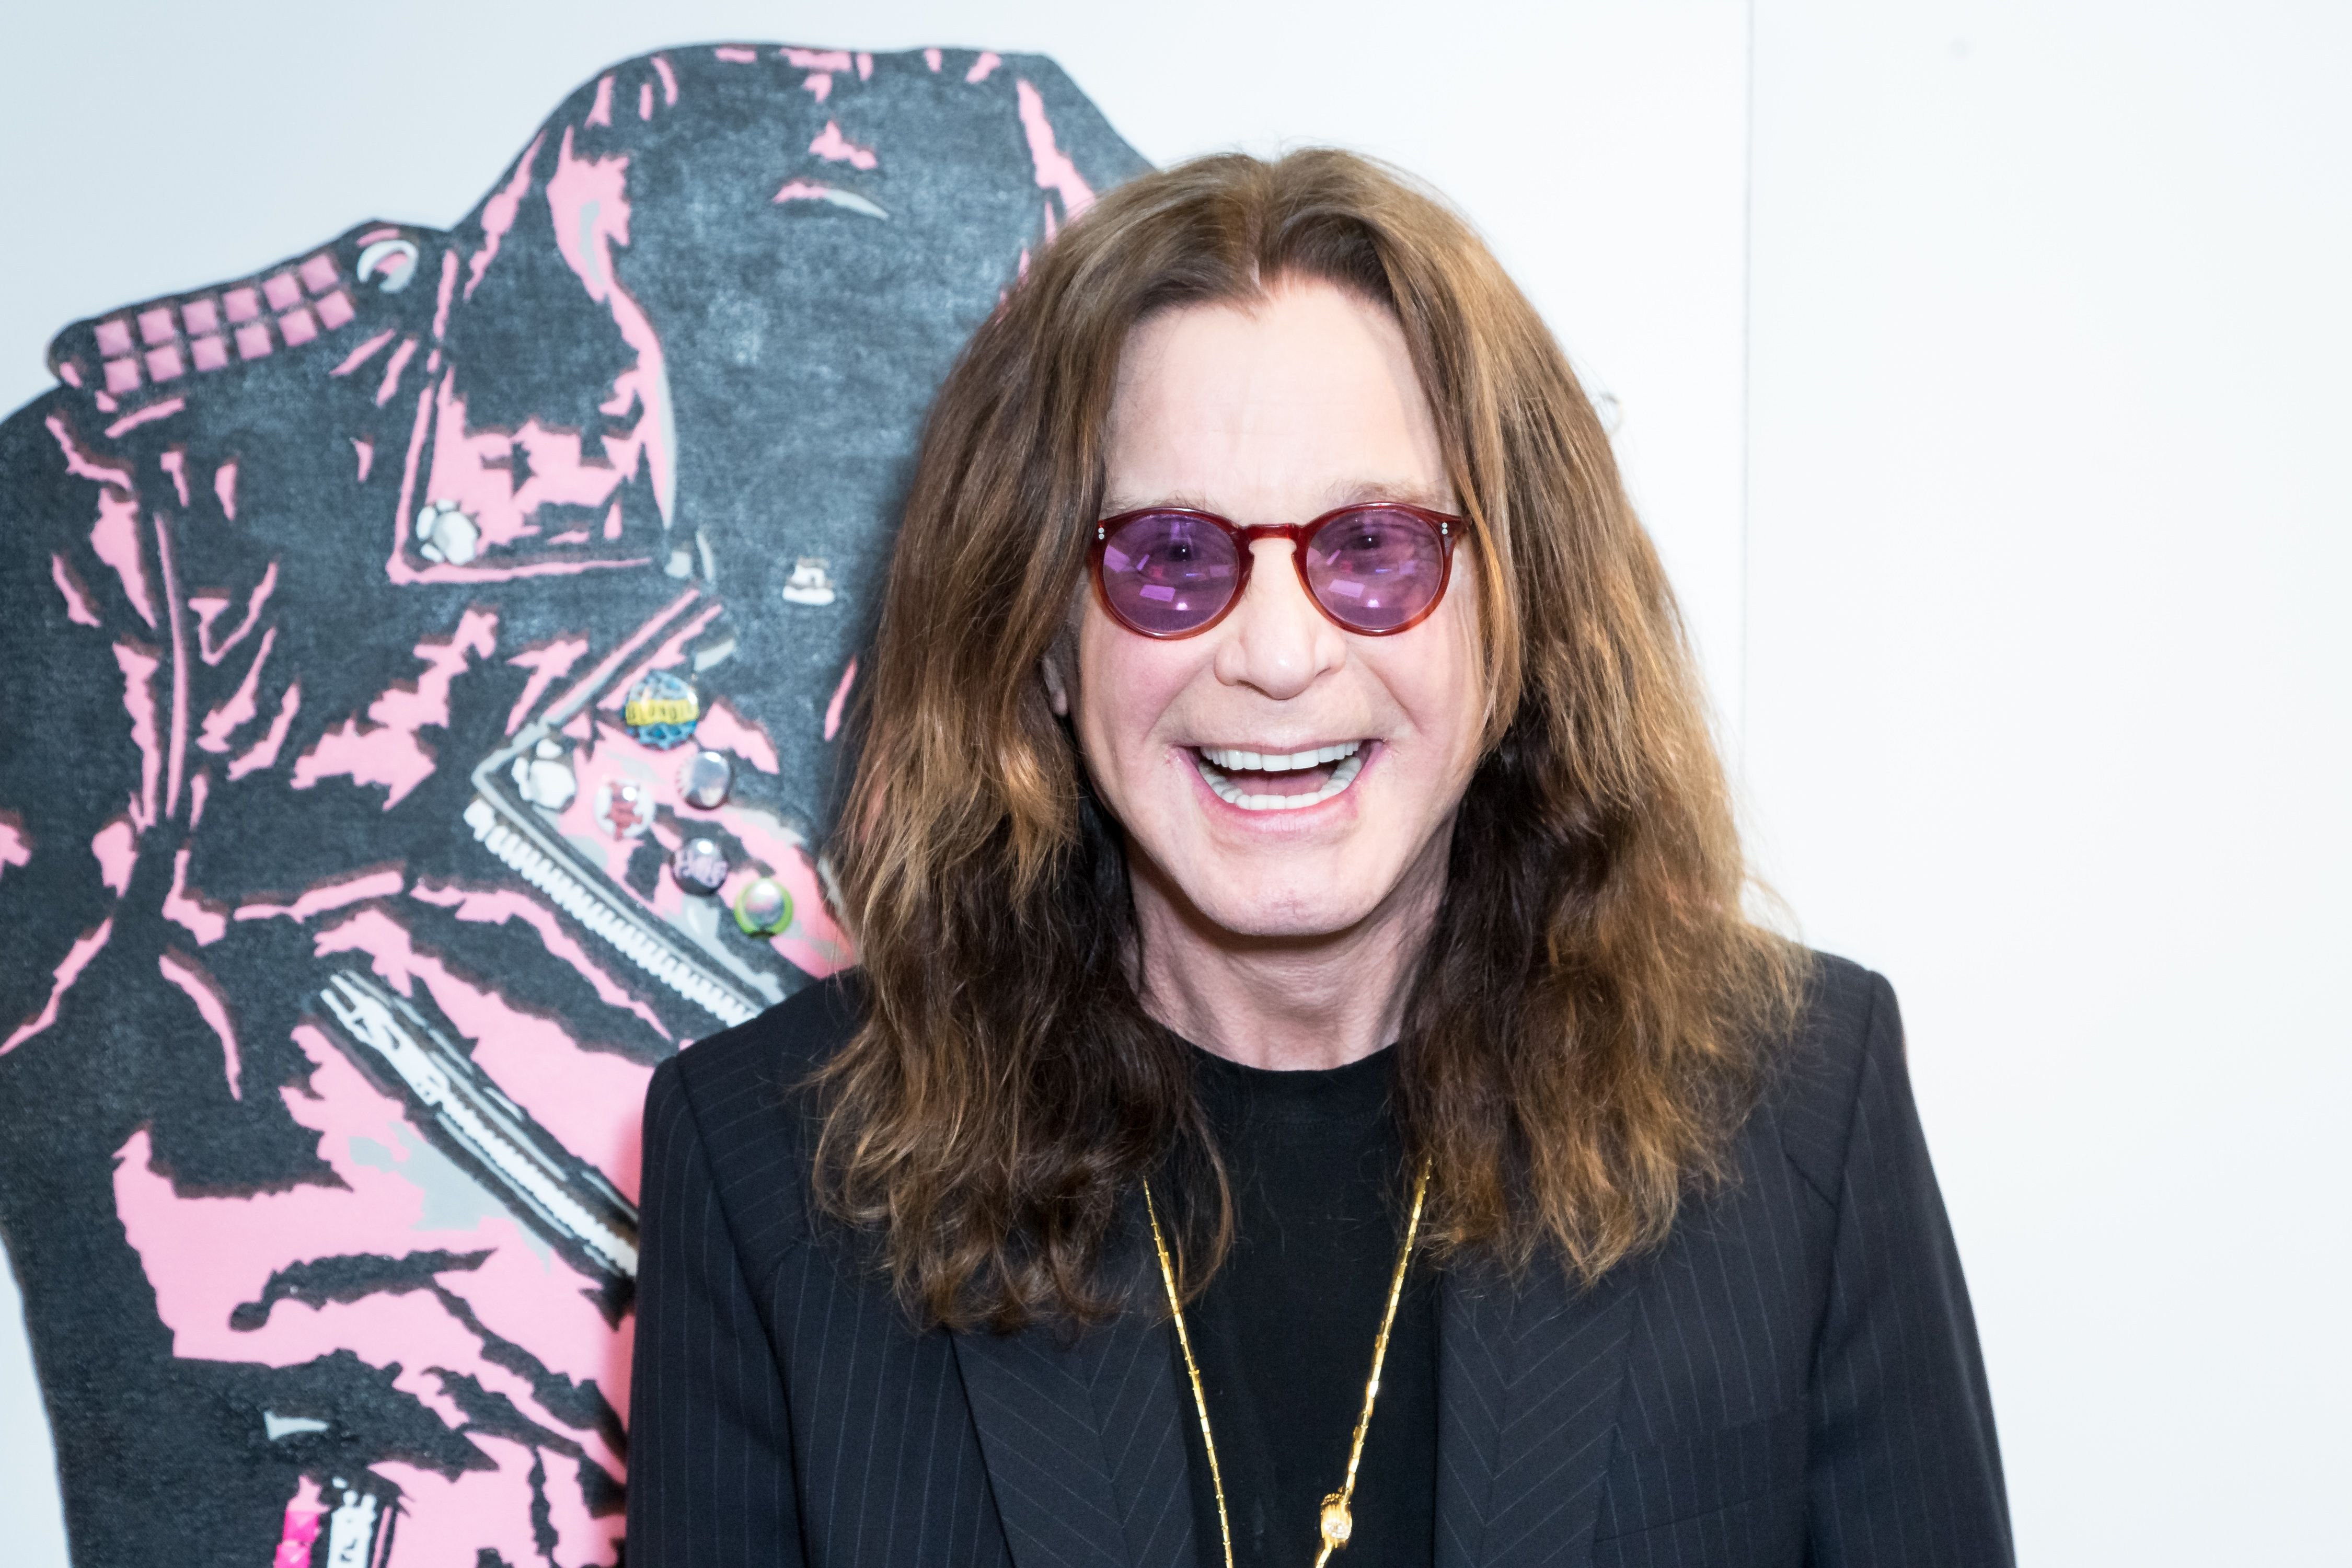 Ozzy Osbourne at the Billy Morrison - Aude Somnia Solo Exhibition at Elisabeth Weinstock on September 28, 2017 in Los Angeles, California. | Source: Getty Images